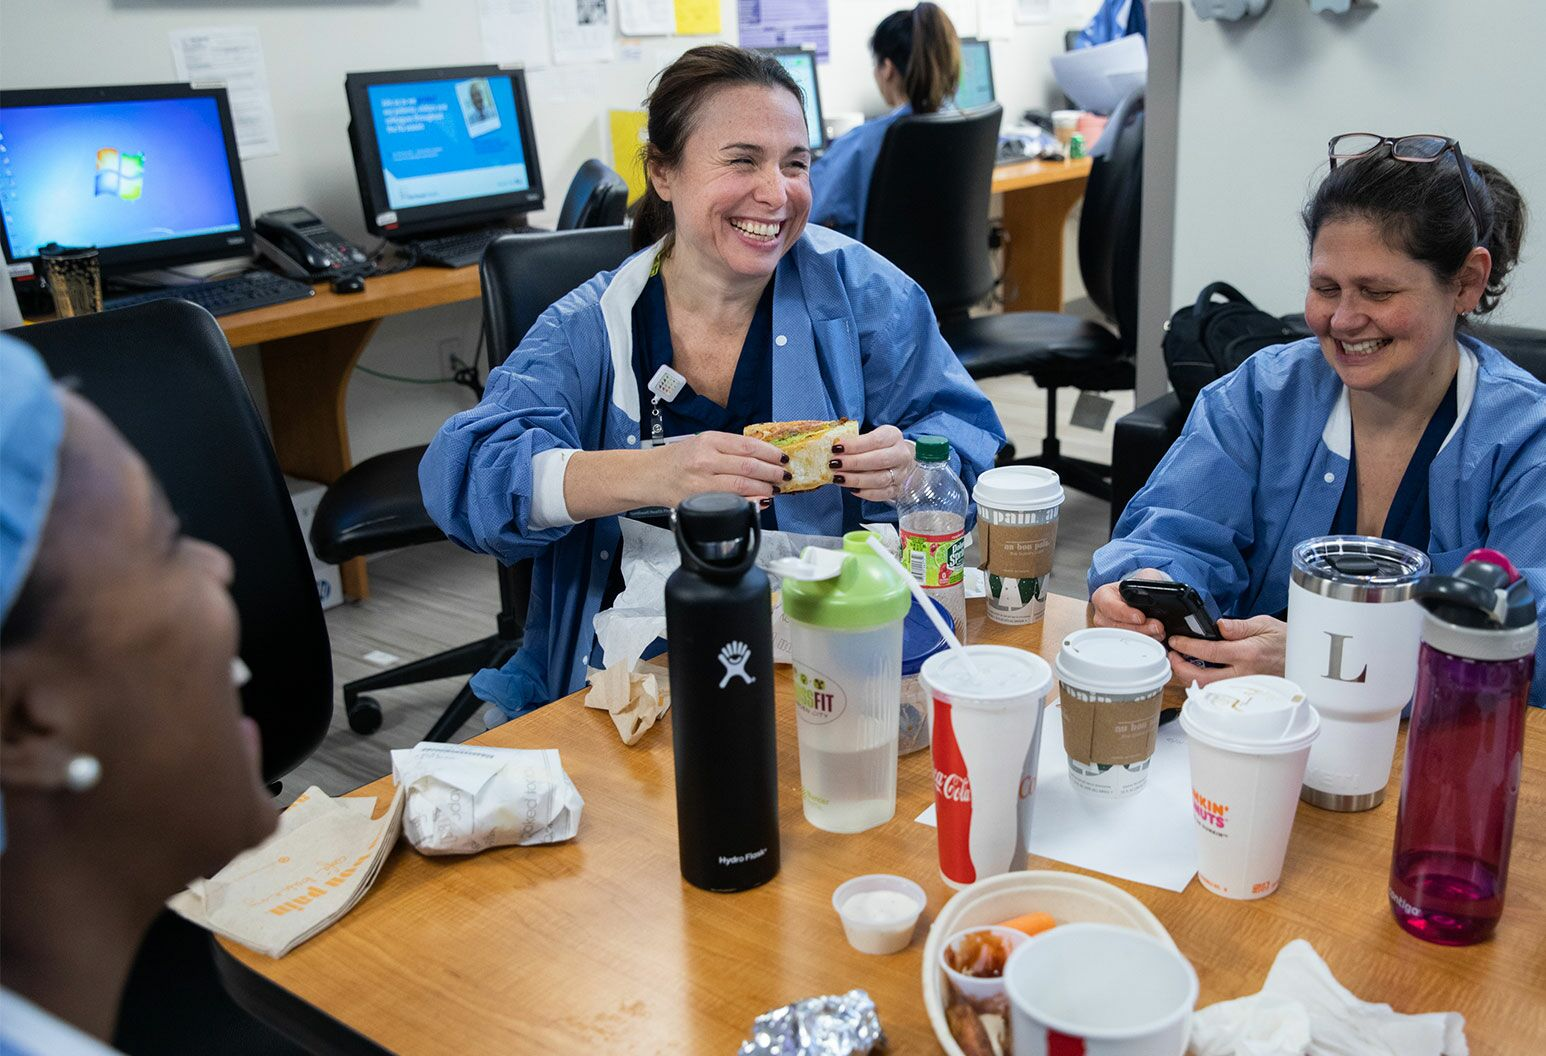 A woman sits at a desk holding a sandwhich with two other women. They are all wearing blue scrubs. The table is filled with drinks and water bottles.